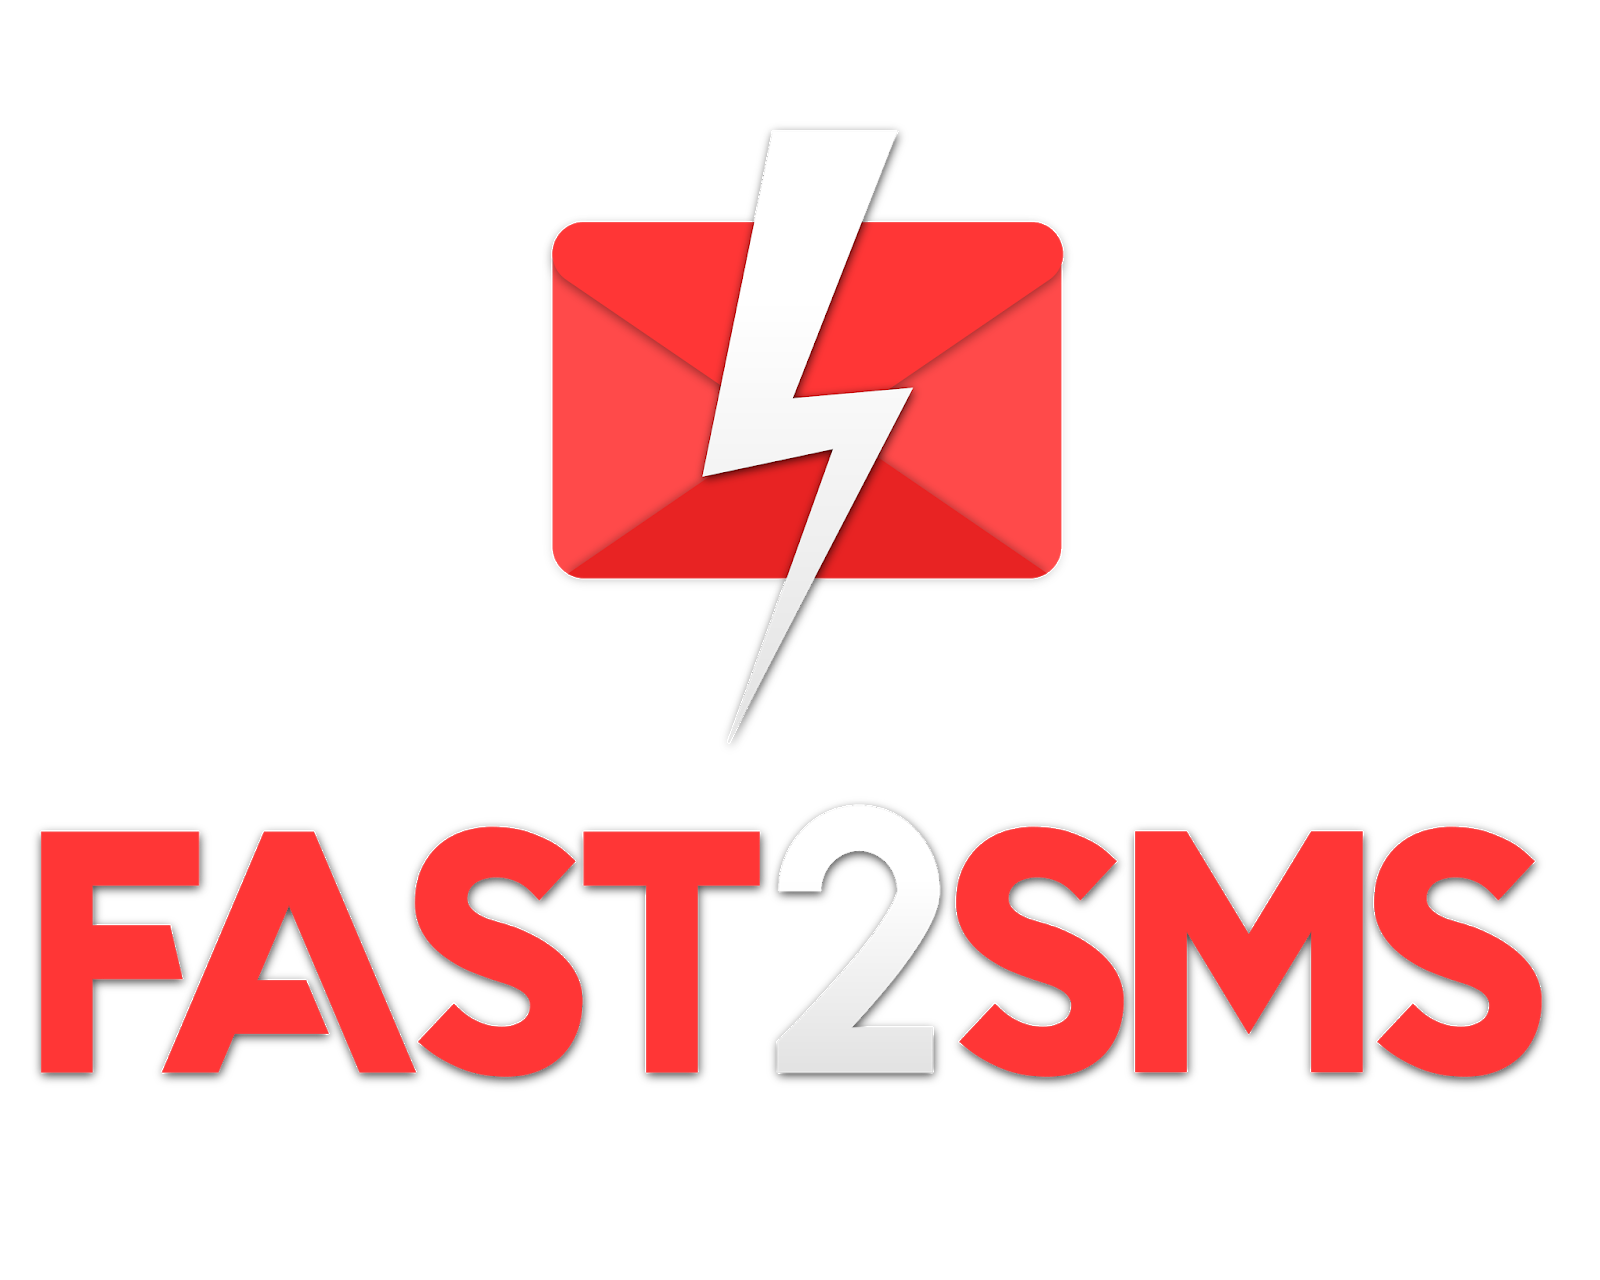 fast2sms coupon zone  fast2sms sidtalk coupons  fast2sms sidtalk website  fast2sms.com/sid talk  sidtalk coupon zone  fast2sms.c om/sidtalk  sidtalk coupon code  fast to sms/sidtalk